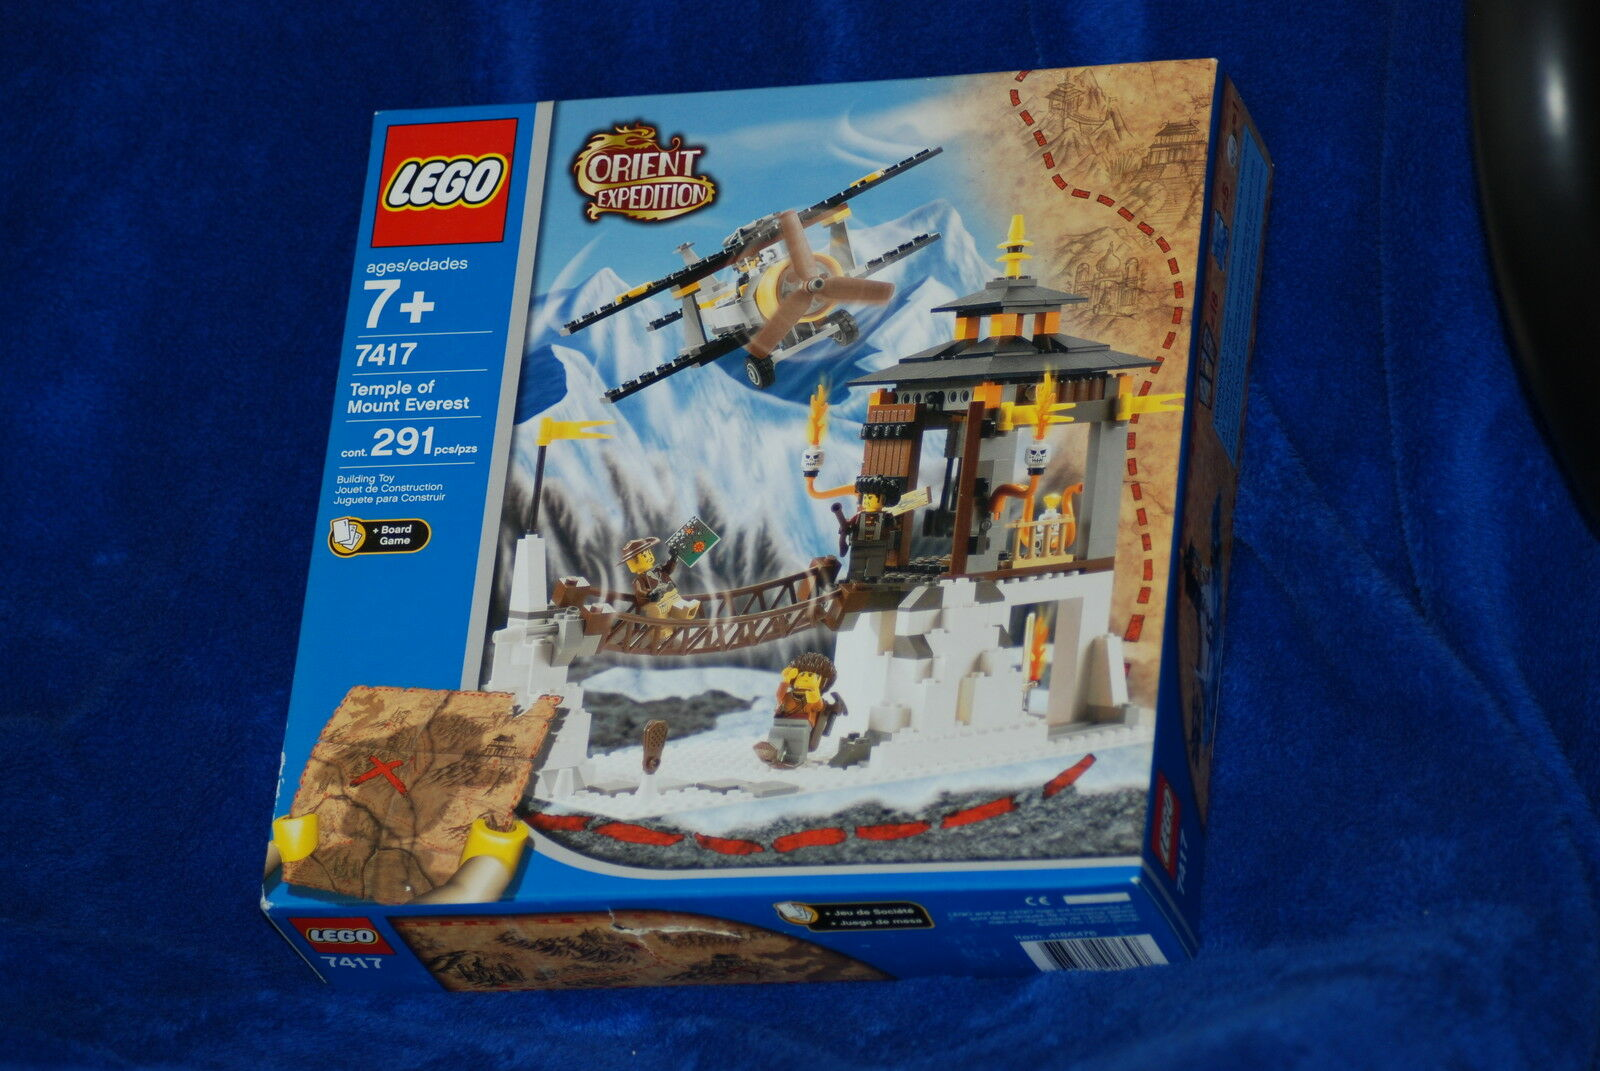 Lego Orient Temple of Mount Everest 7417 NISB RETIrot SET LOT